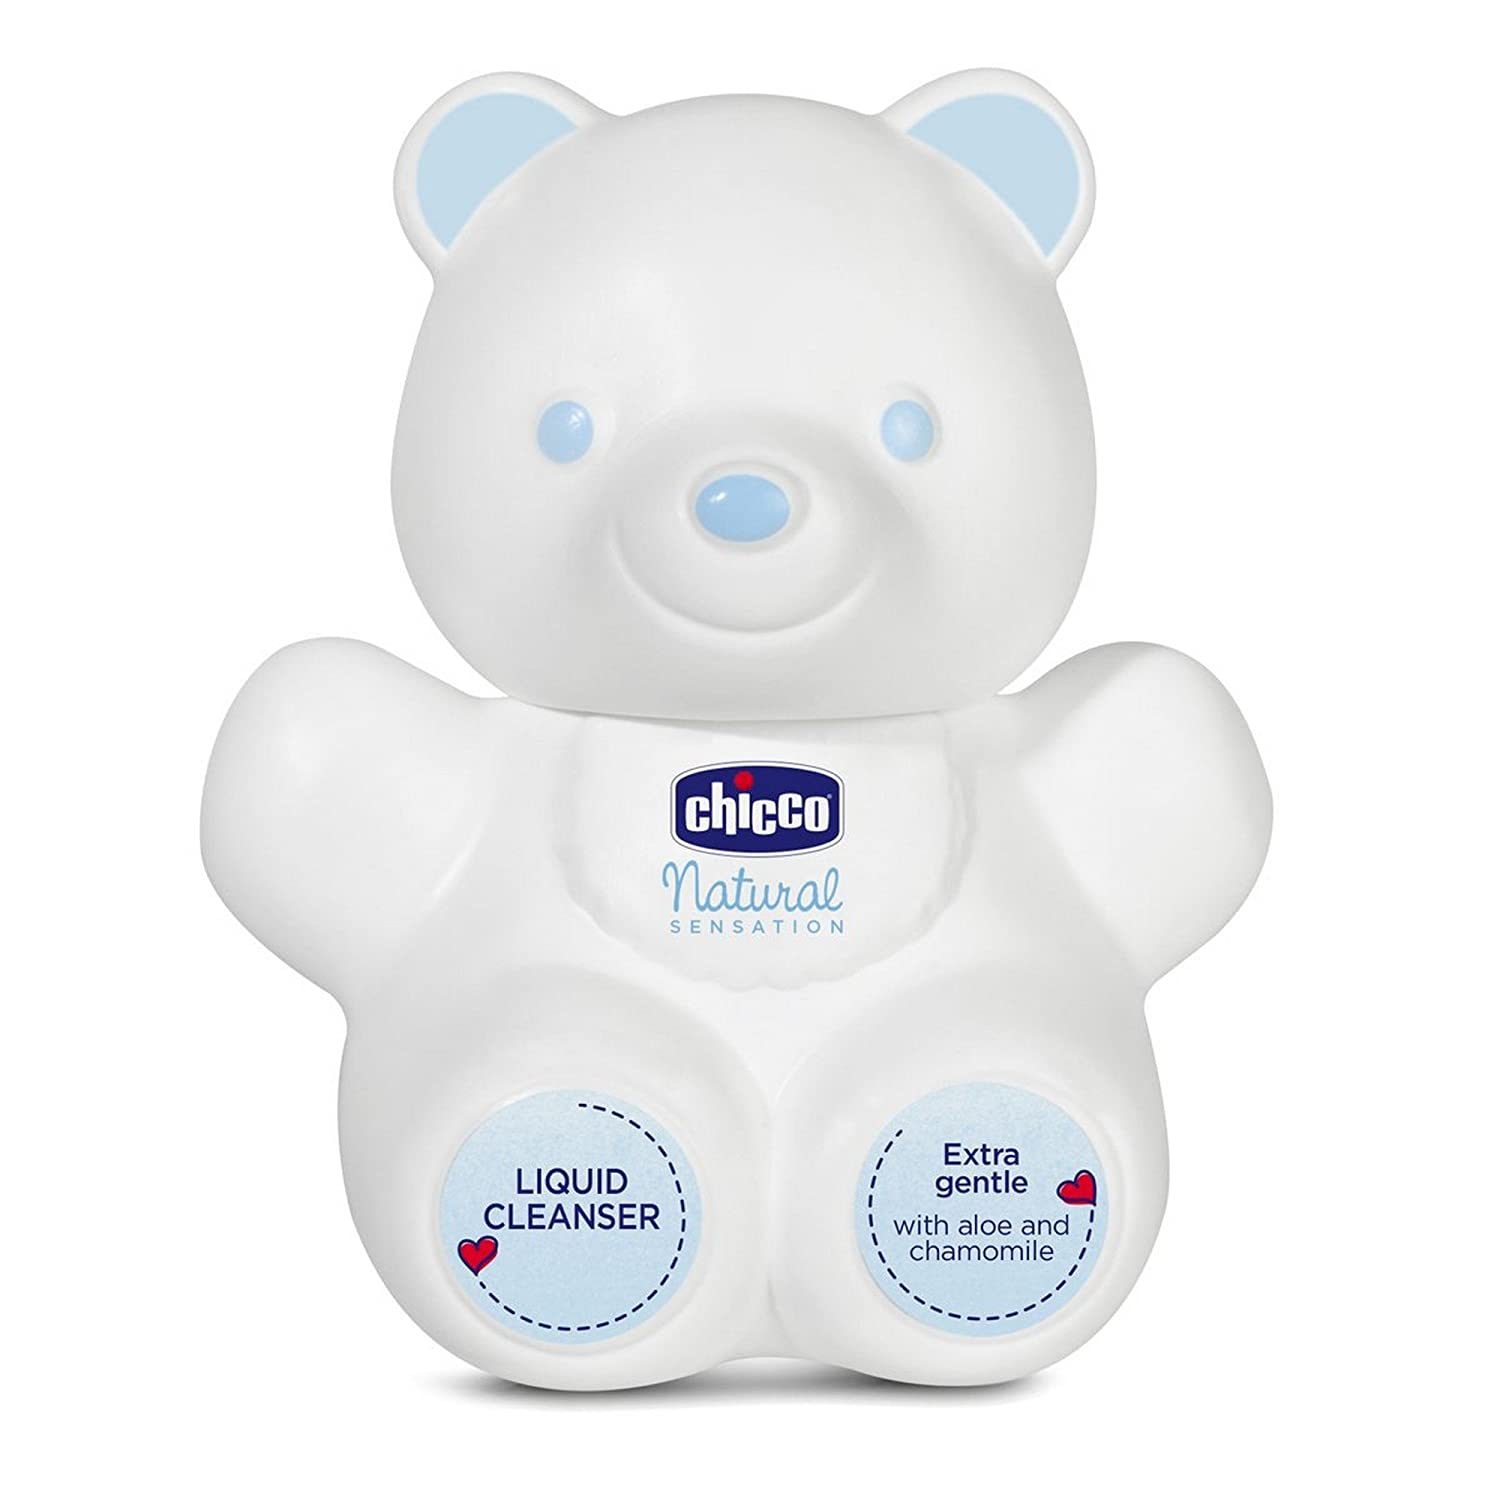 Buy Chicco Nat Sens Bear Liquid Cleanser White 300ml Online At Low Pigeon Baby Shampoo Chamomile 100ml Paraben Free Prices In India